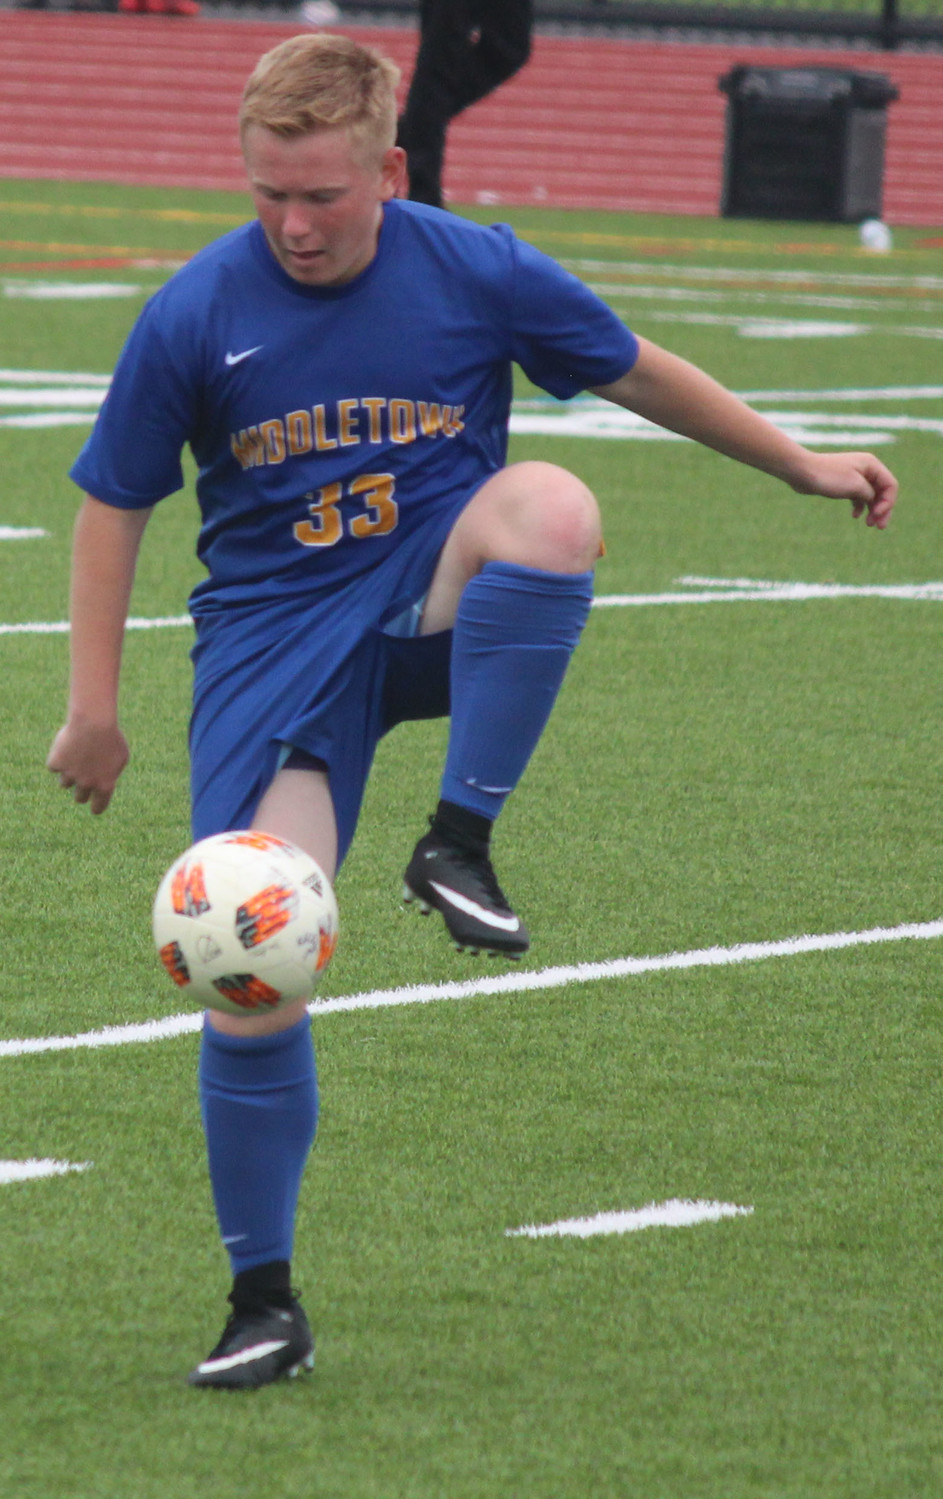 Mason Garza traps the ball Sept. 1 vs. the Schuylkill Valley Panthers.